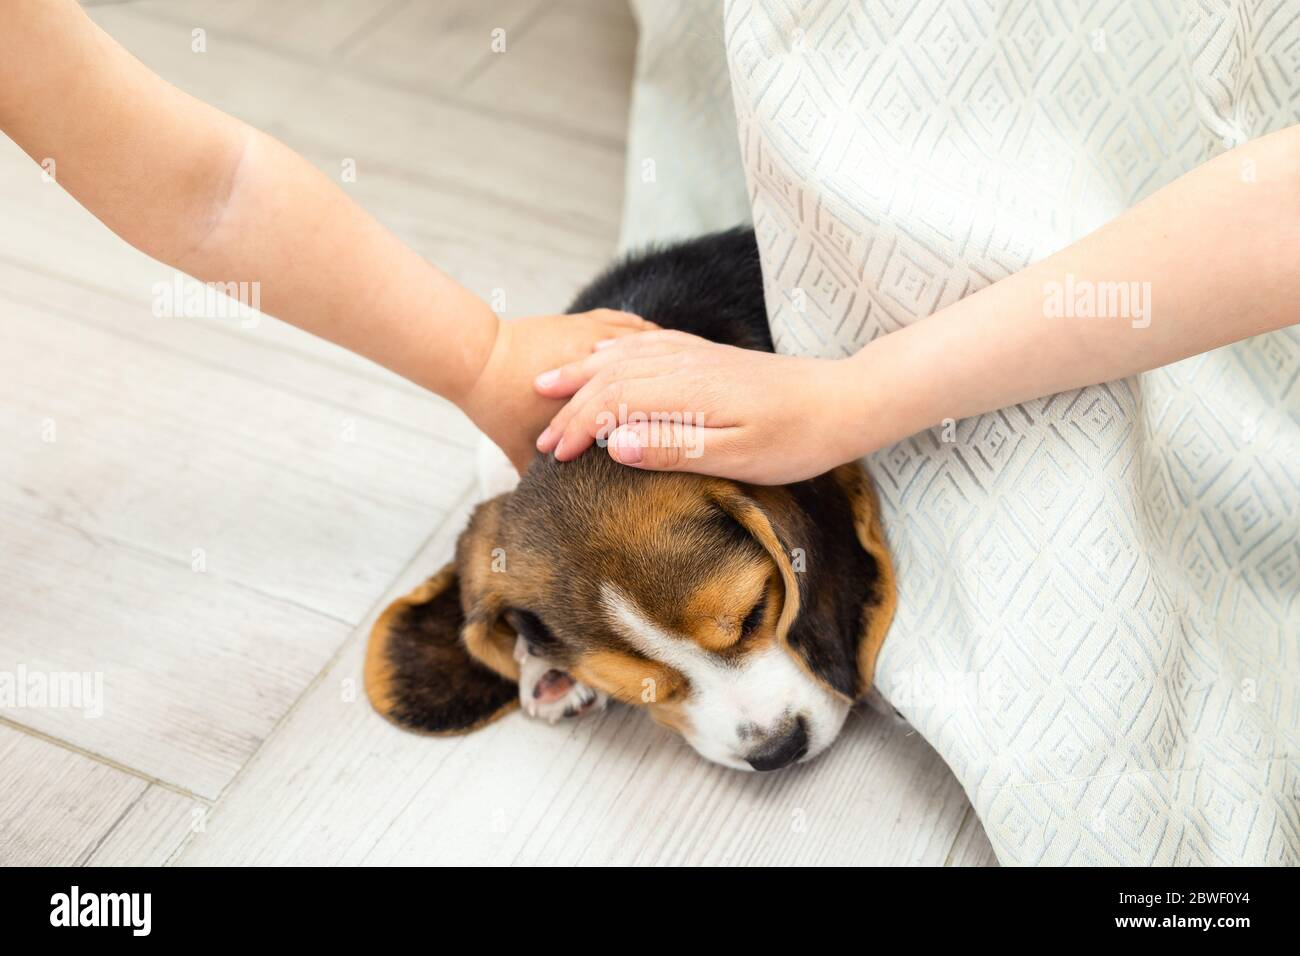 Beagle Puppy Sleeps Baby Hands Stroking Him Life Style Care Stock Photo Alamy